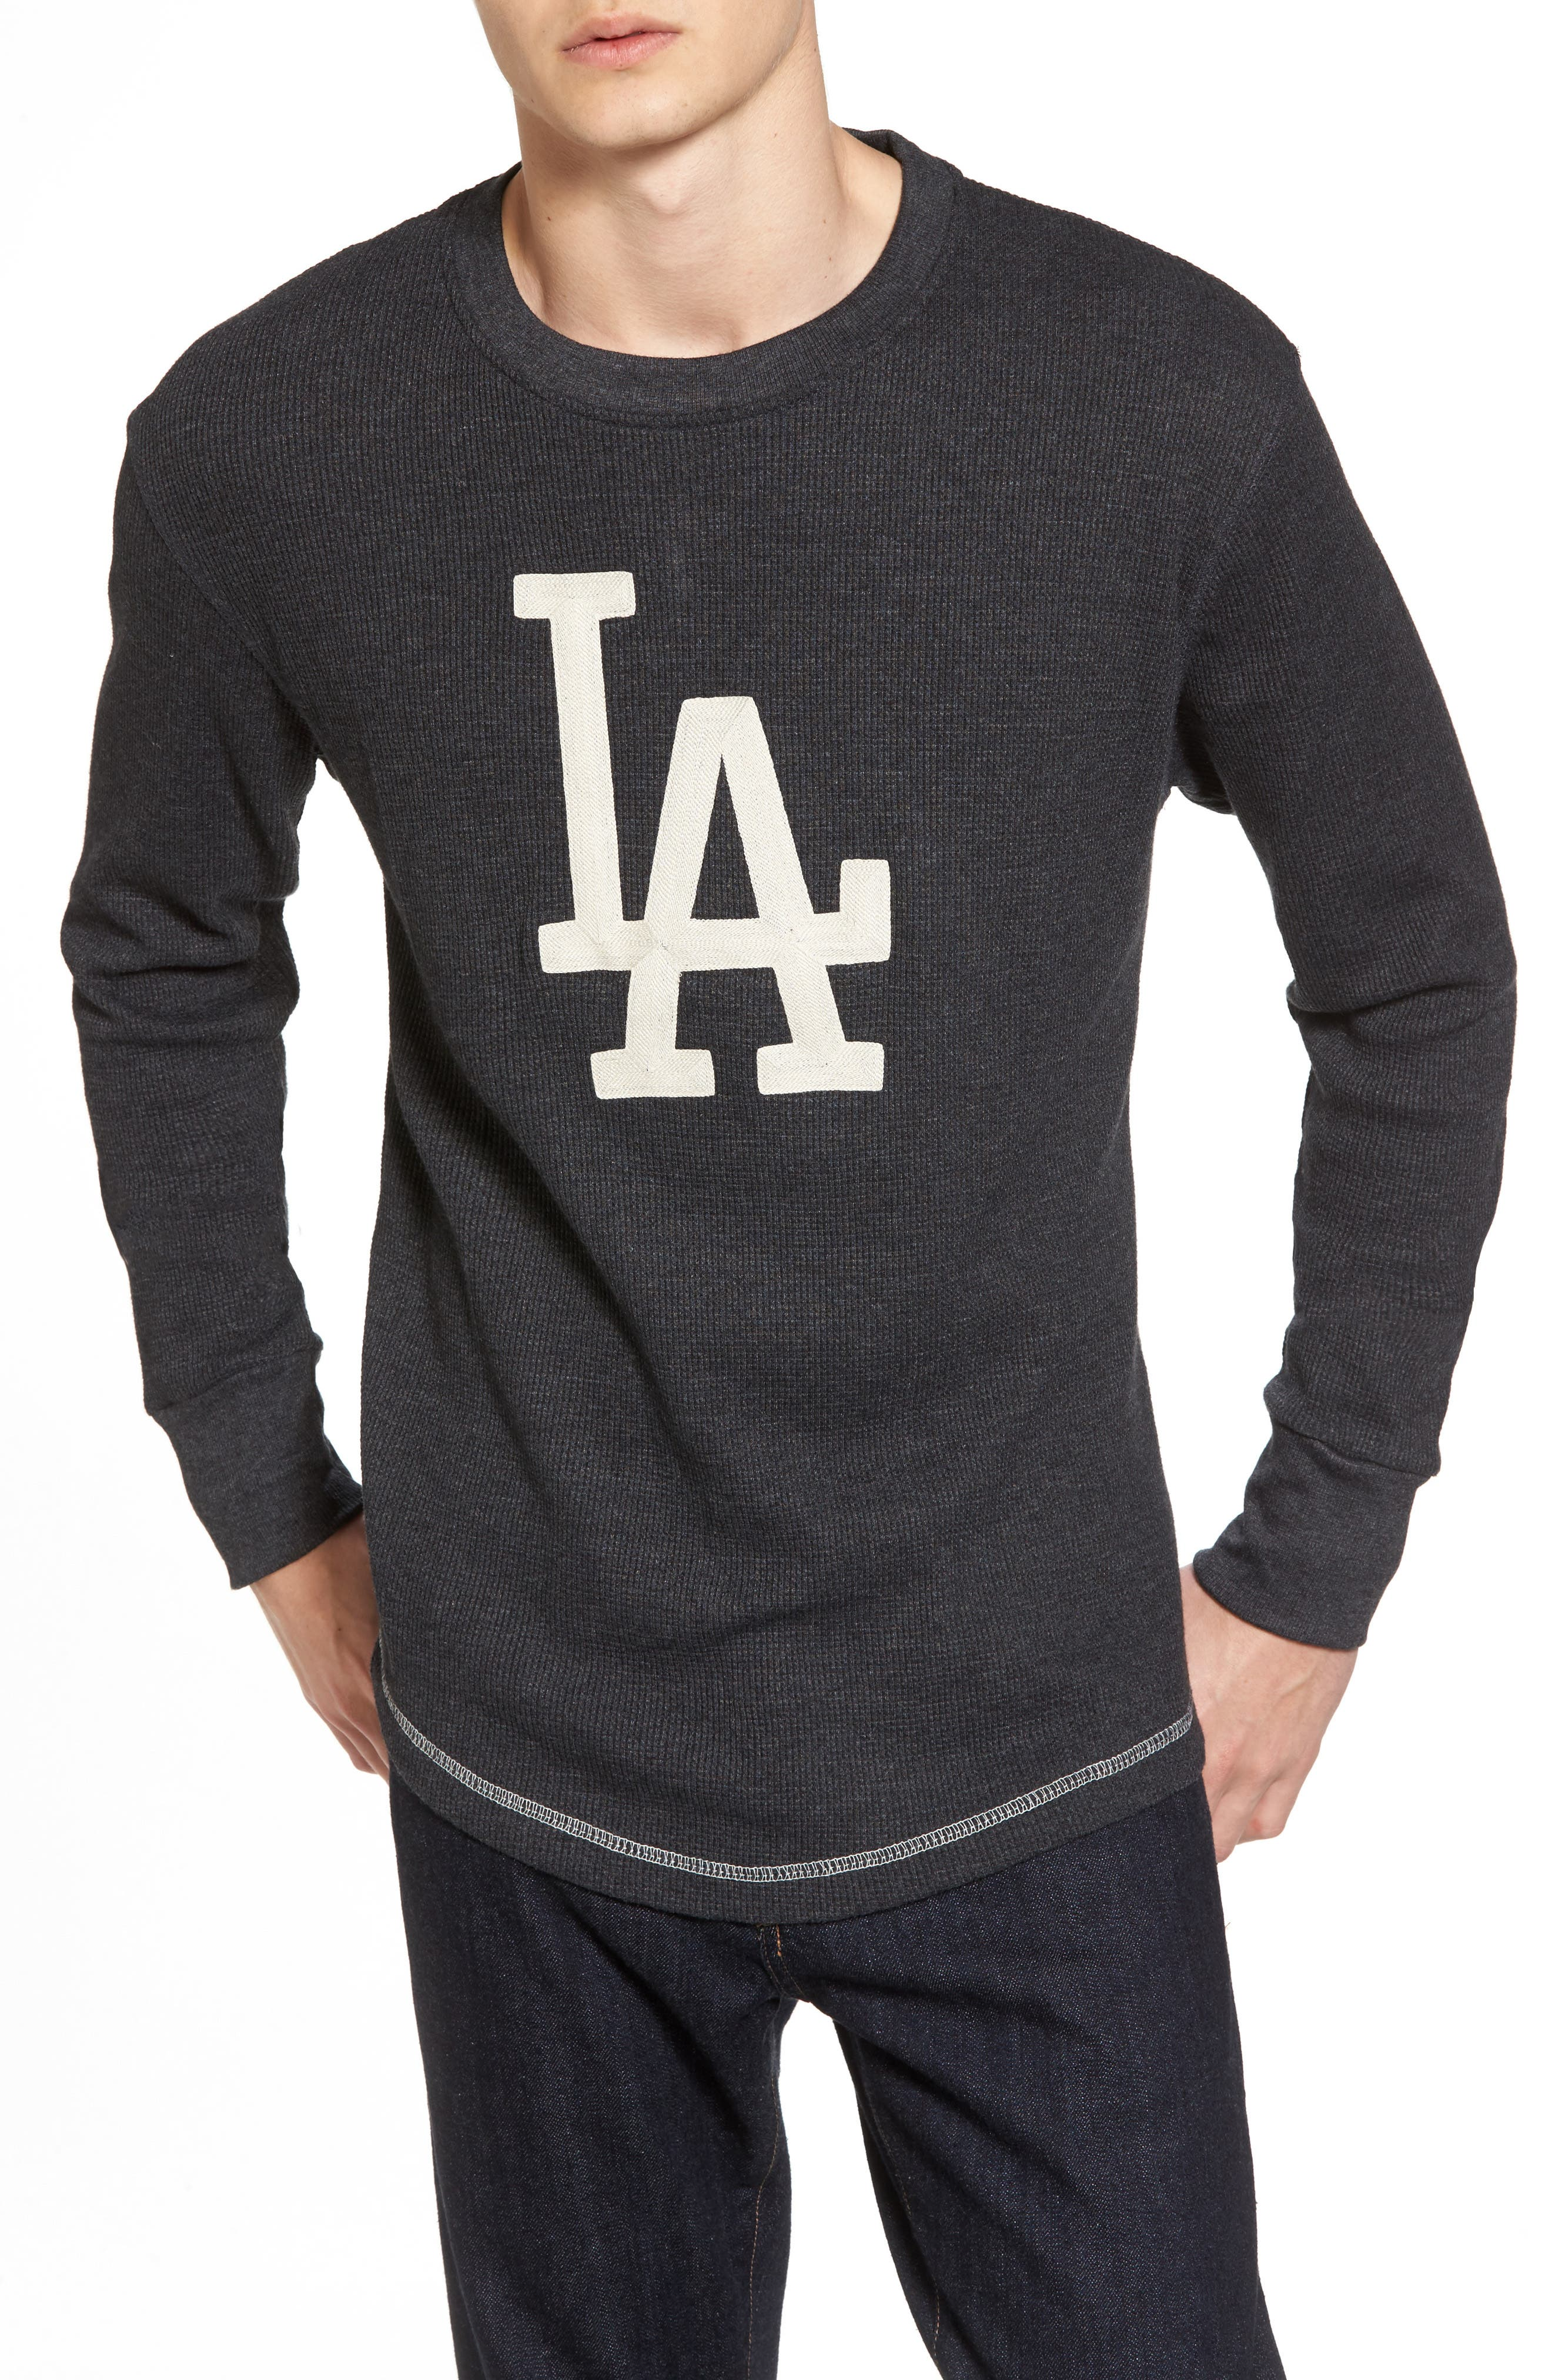 AMERICAN NEEDLE,                             Los Angeles Dodgers Embroidered Long Sleeve Thermal Shirt,                             Main thumbnail 1, color,                             001